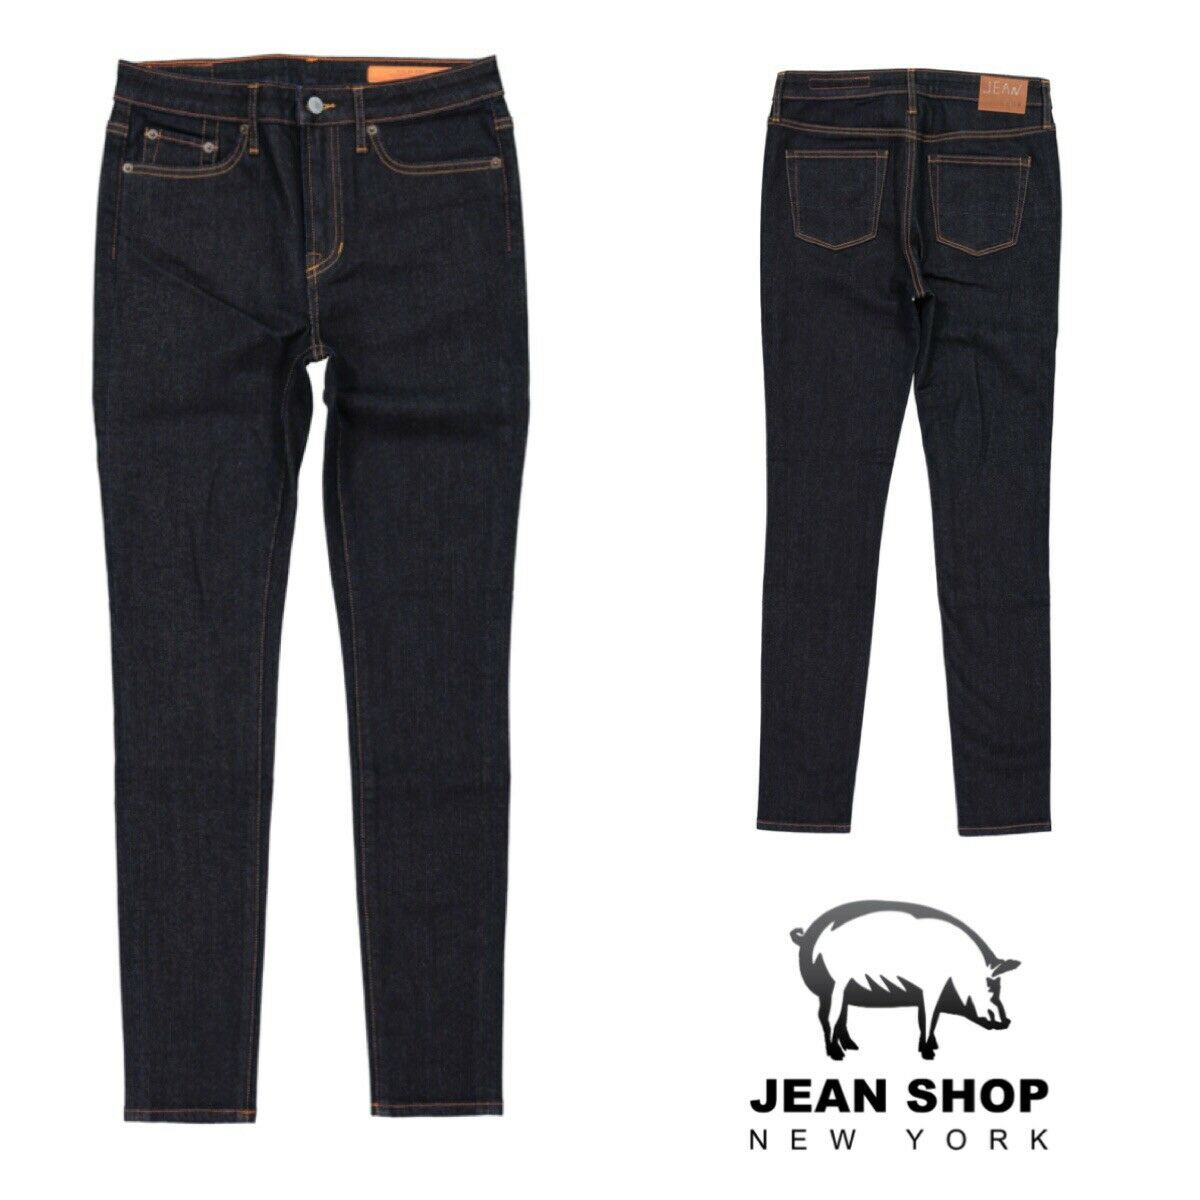 The Jean Shop Relaxed Fit Women's Jeans. Size 4   27